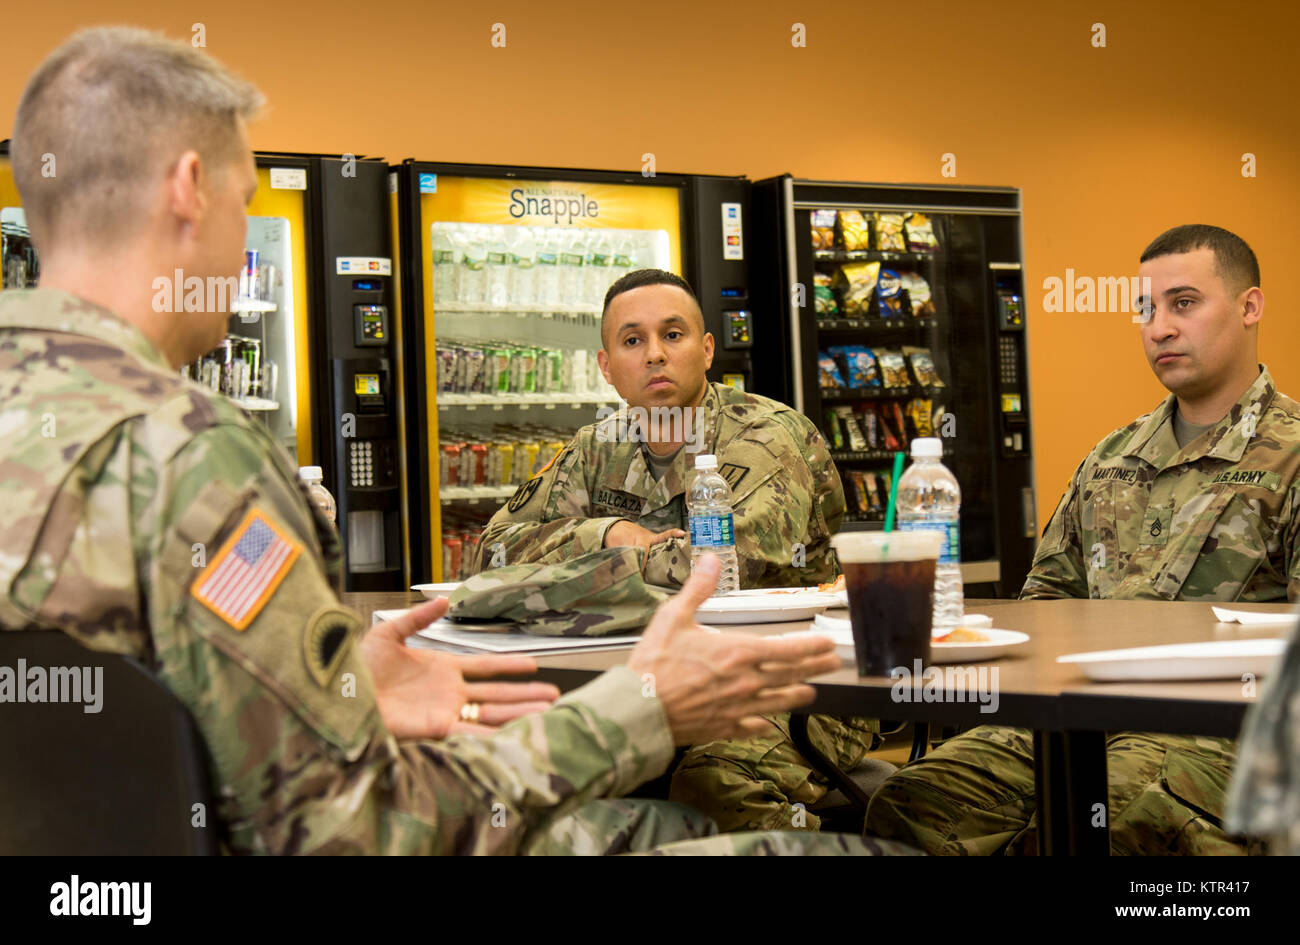 Lt. Gen. Daniel R. Hokanson, the deputy commander, U.S. Northern Command, and vice commander, U.S. Element, North Stock Photo